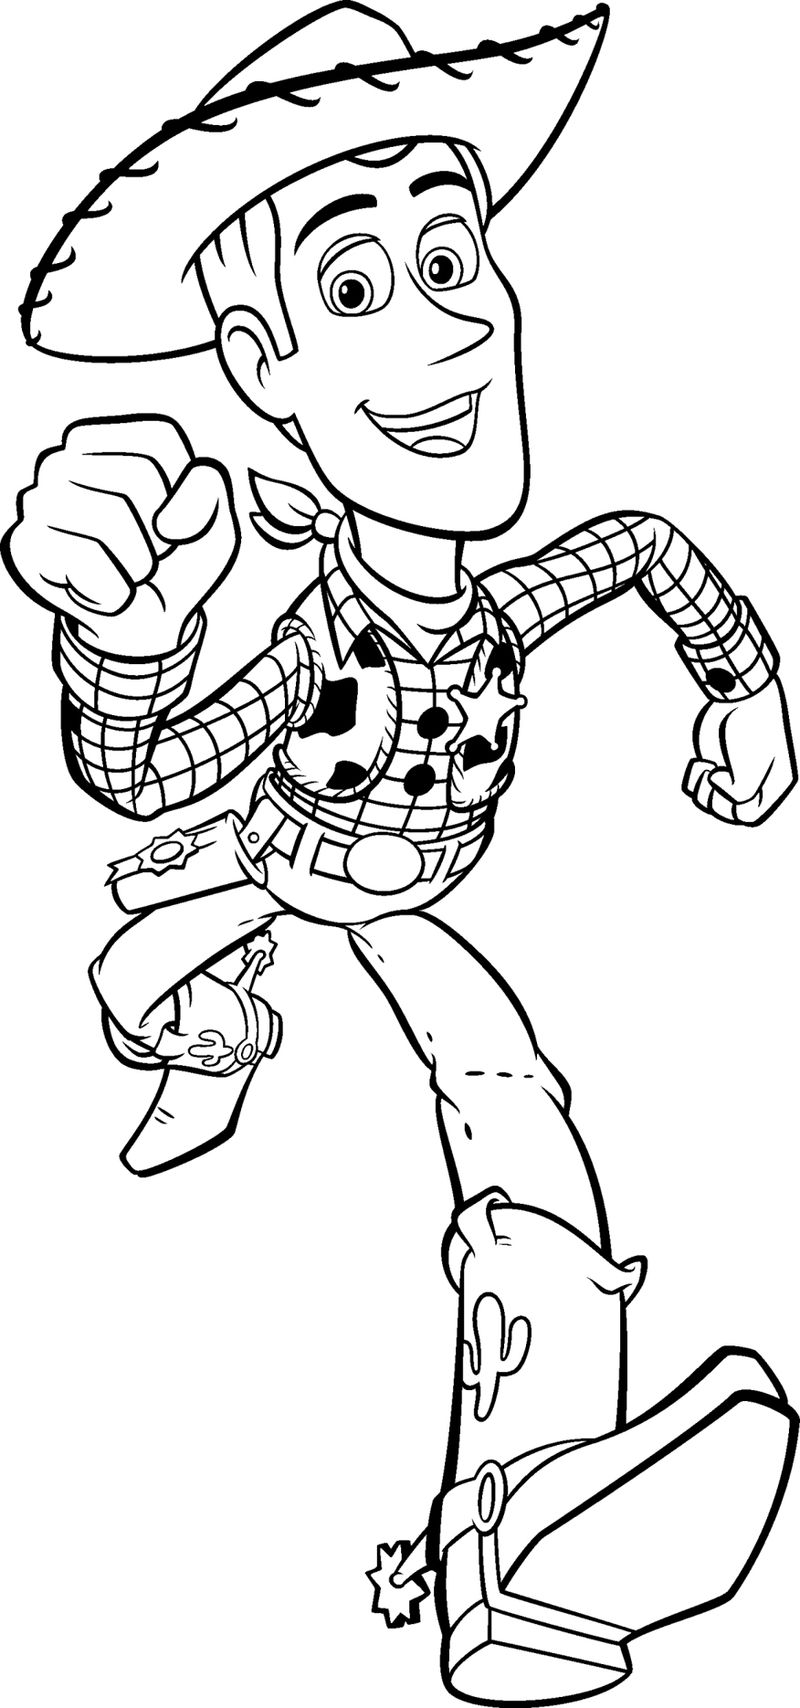 toy story 4 buzz lightyear coloring pages